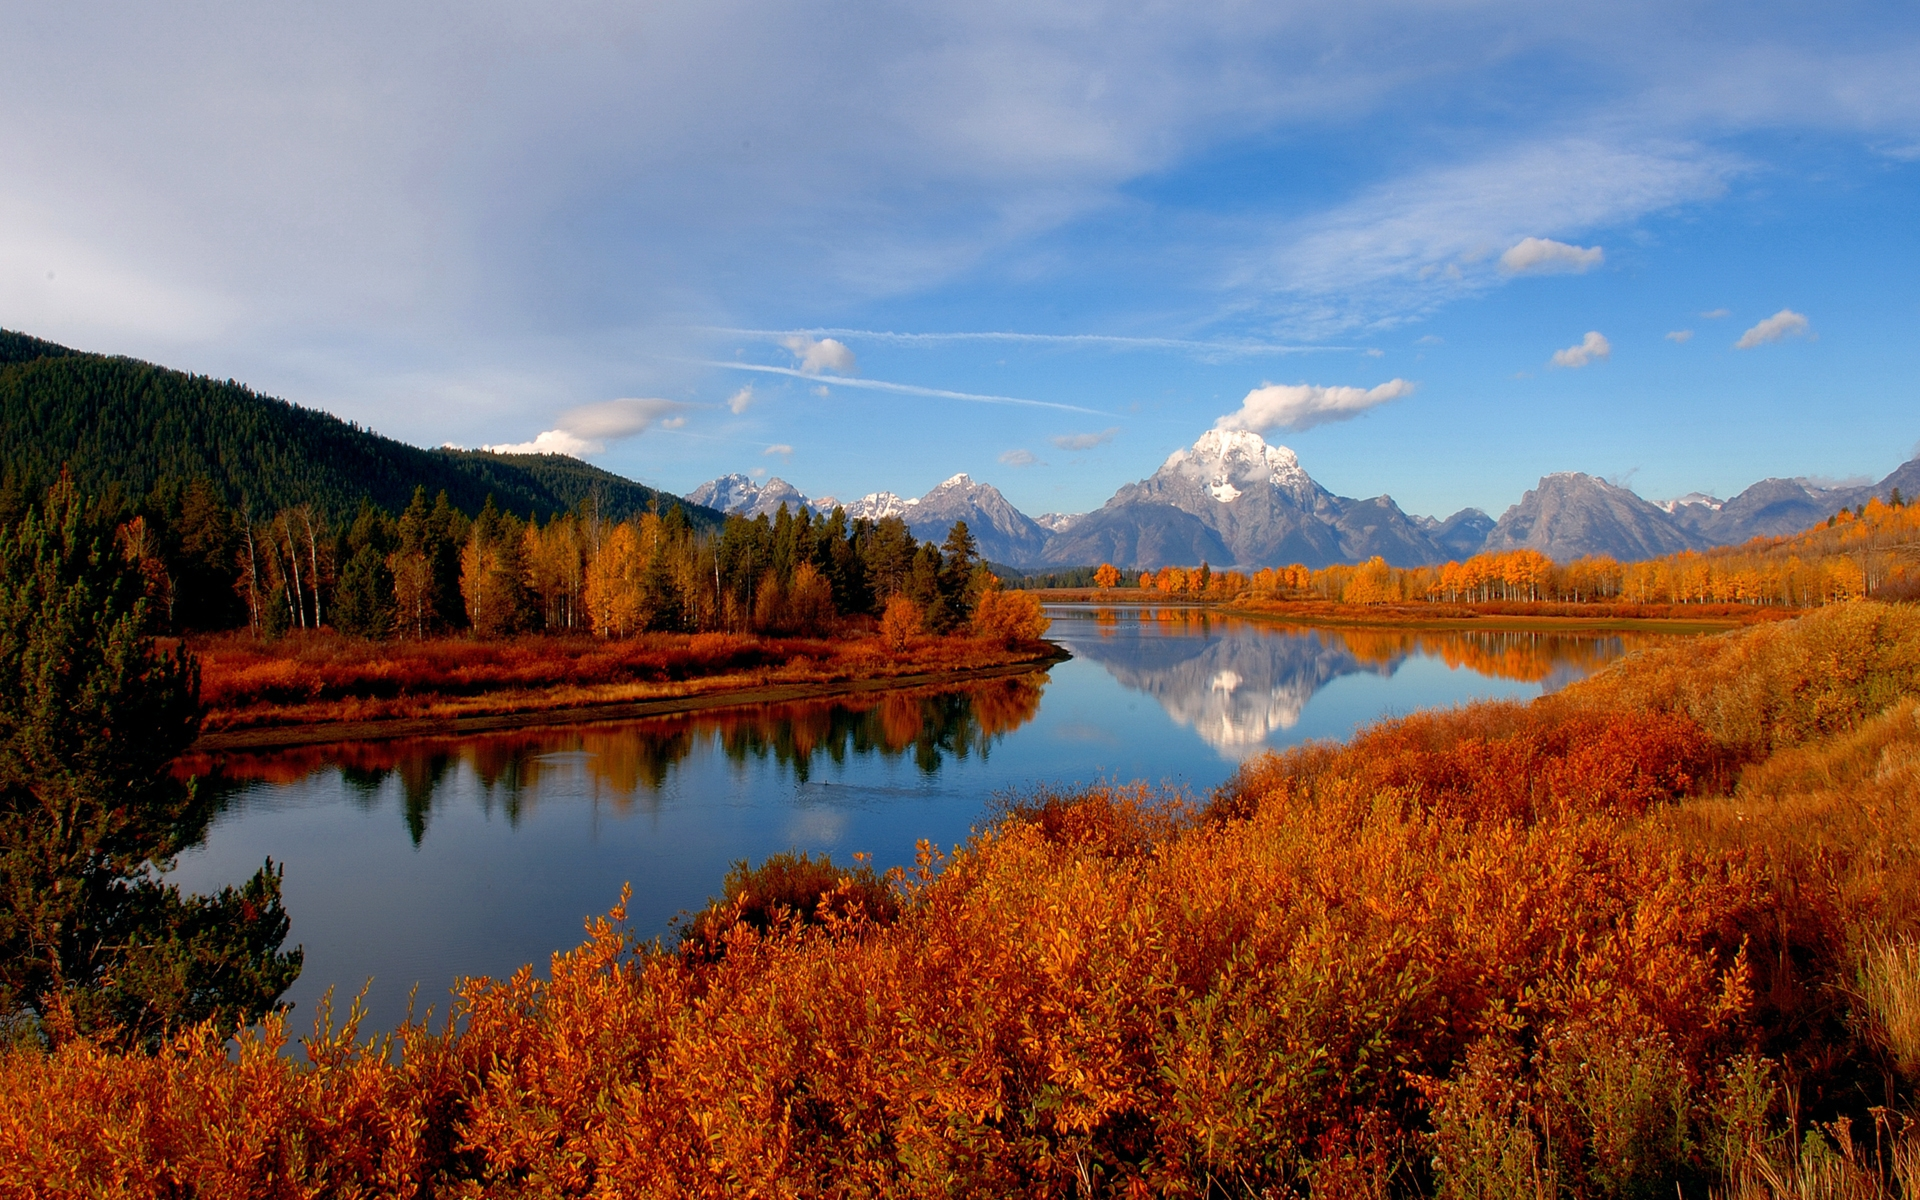 33546 download wallpaper Landscape, Rivers, Mountains screensavers and pictures for free